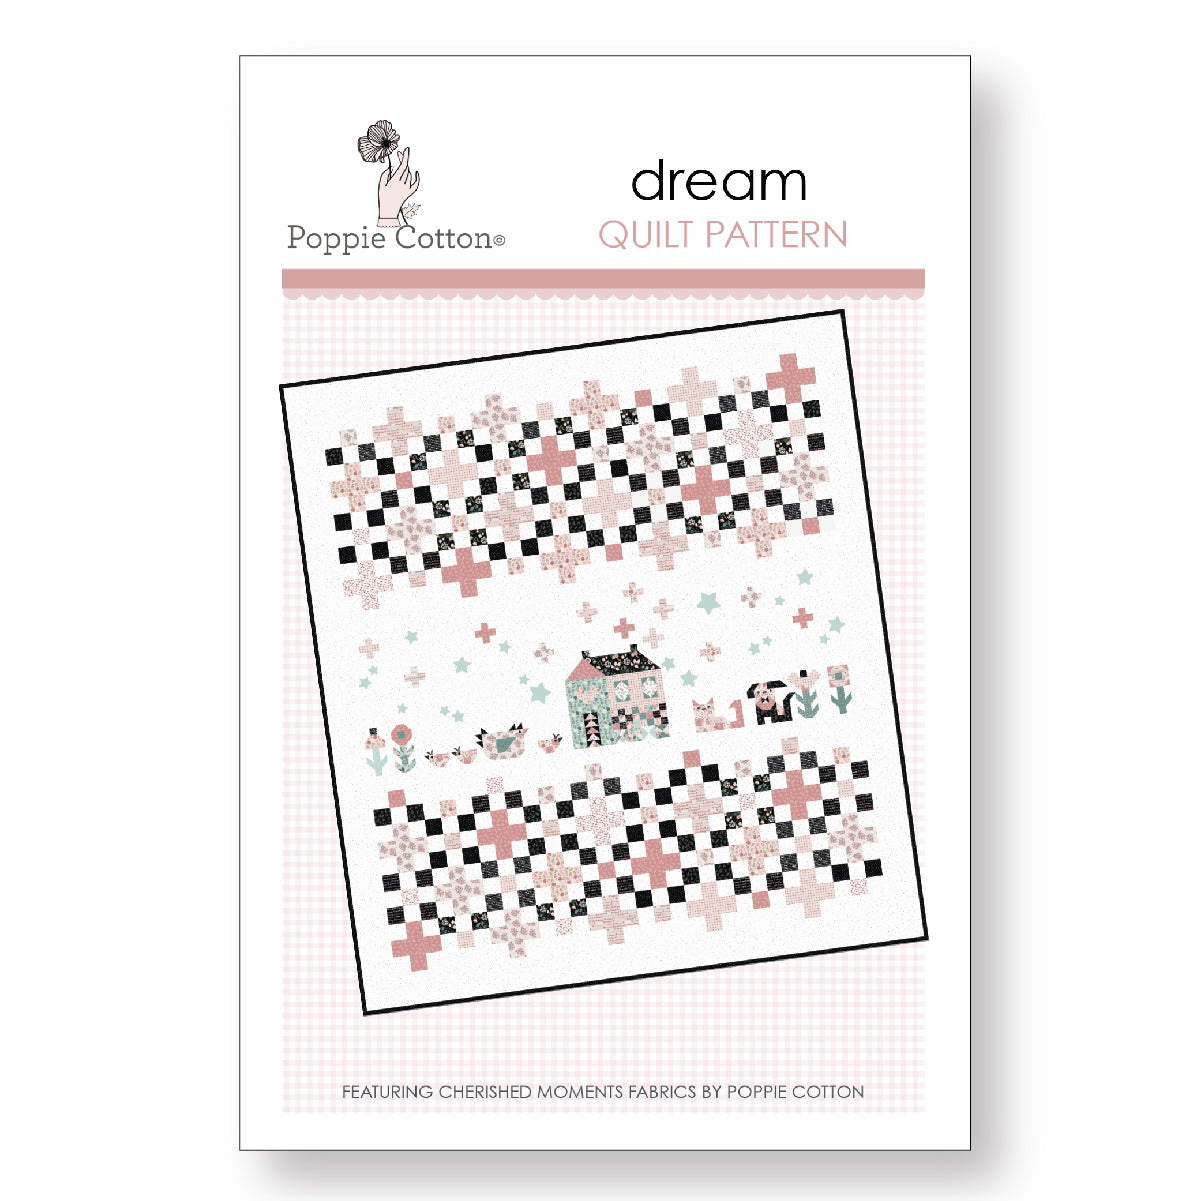 Dream Quilt Pattern by Poppie Cotton Fabrics